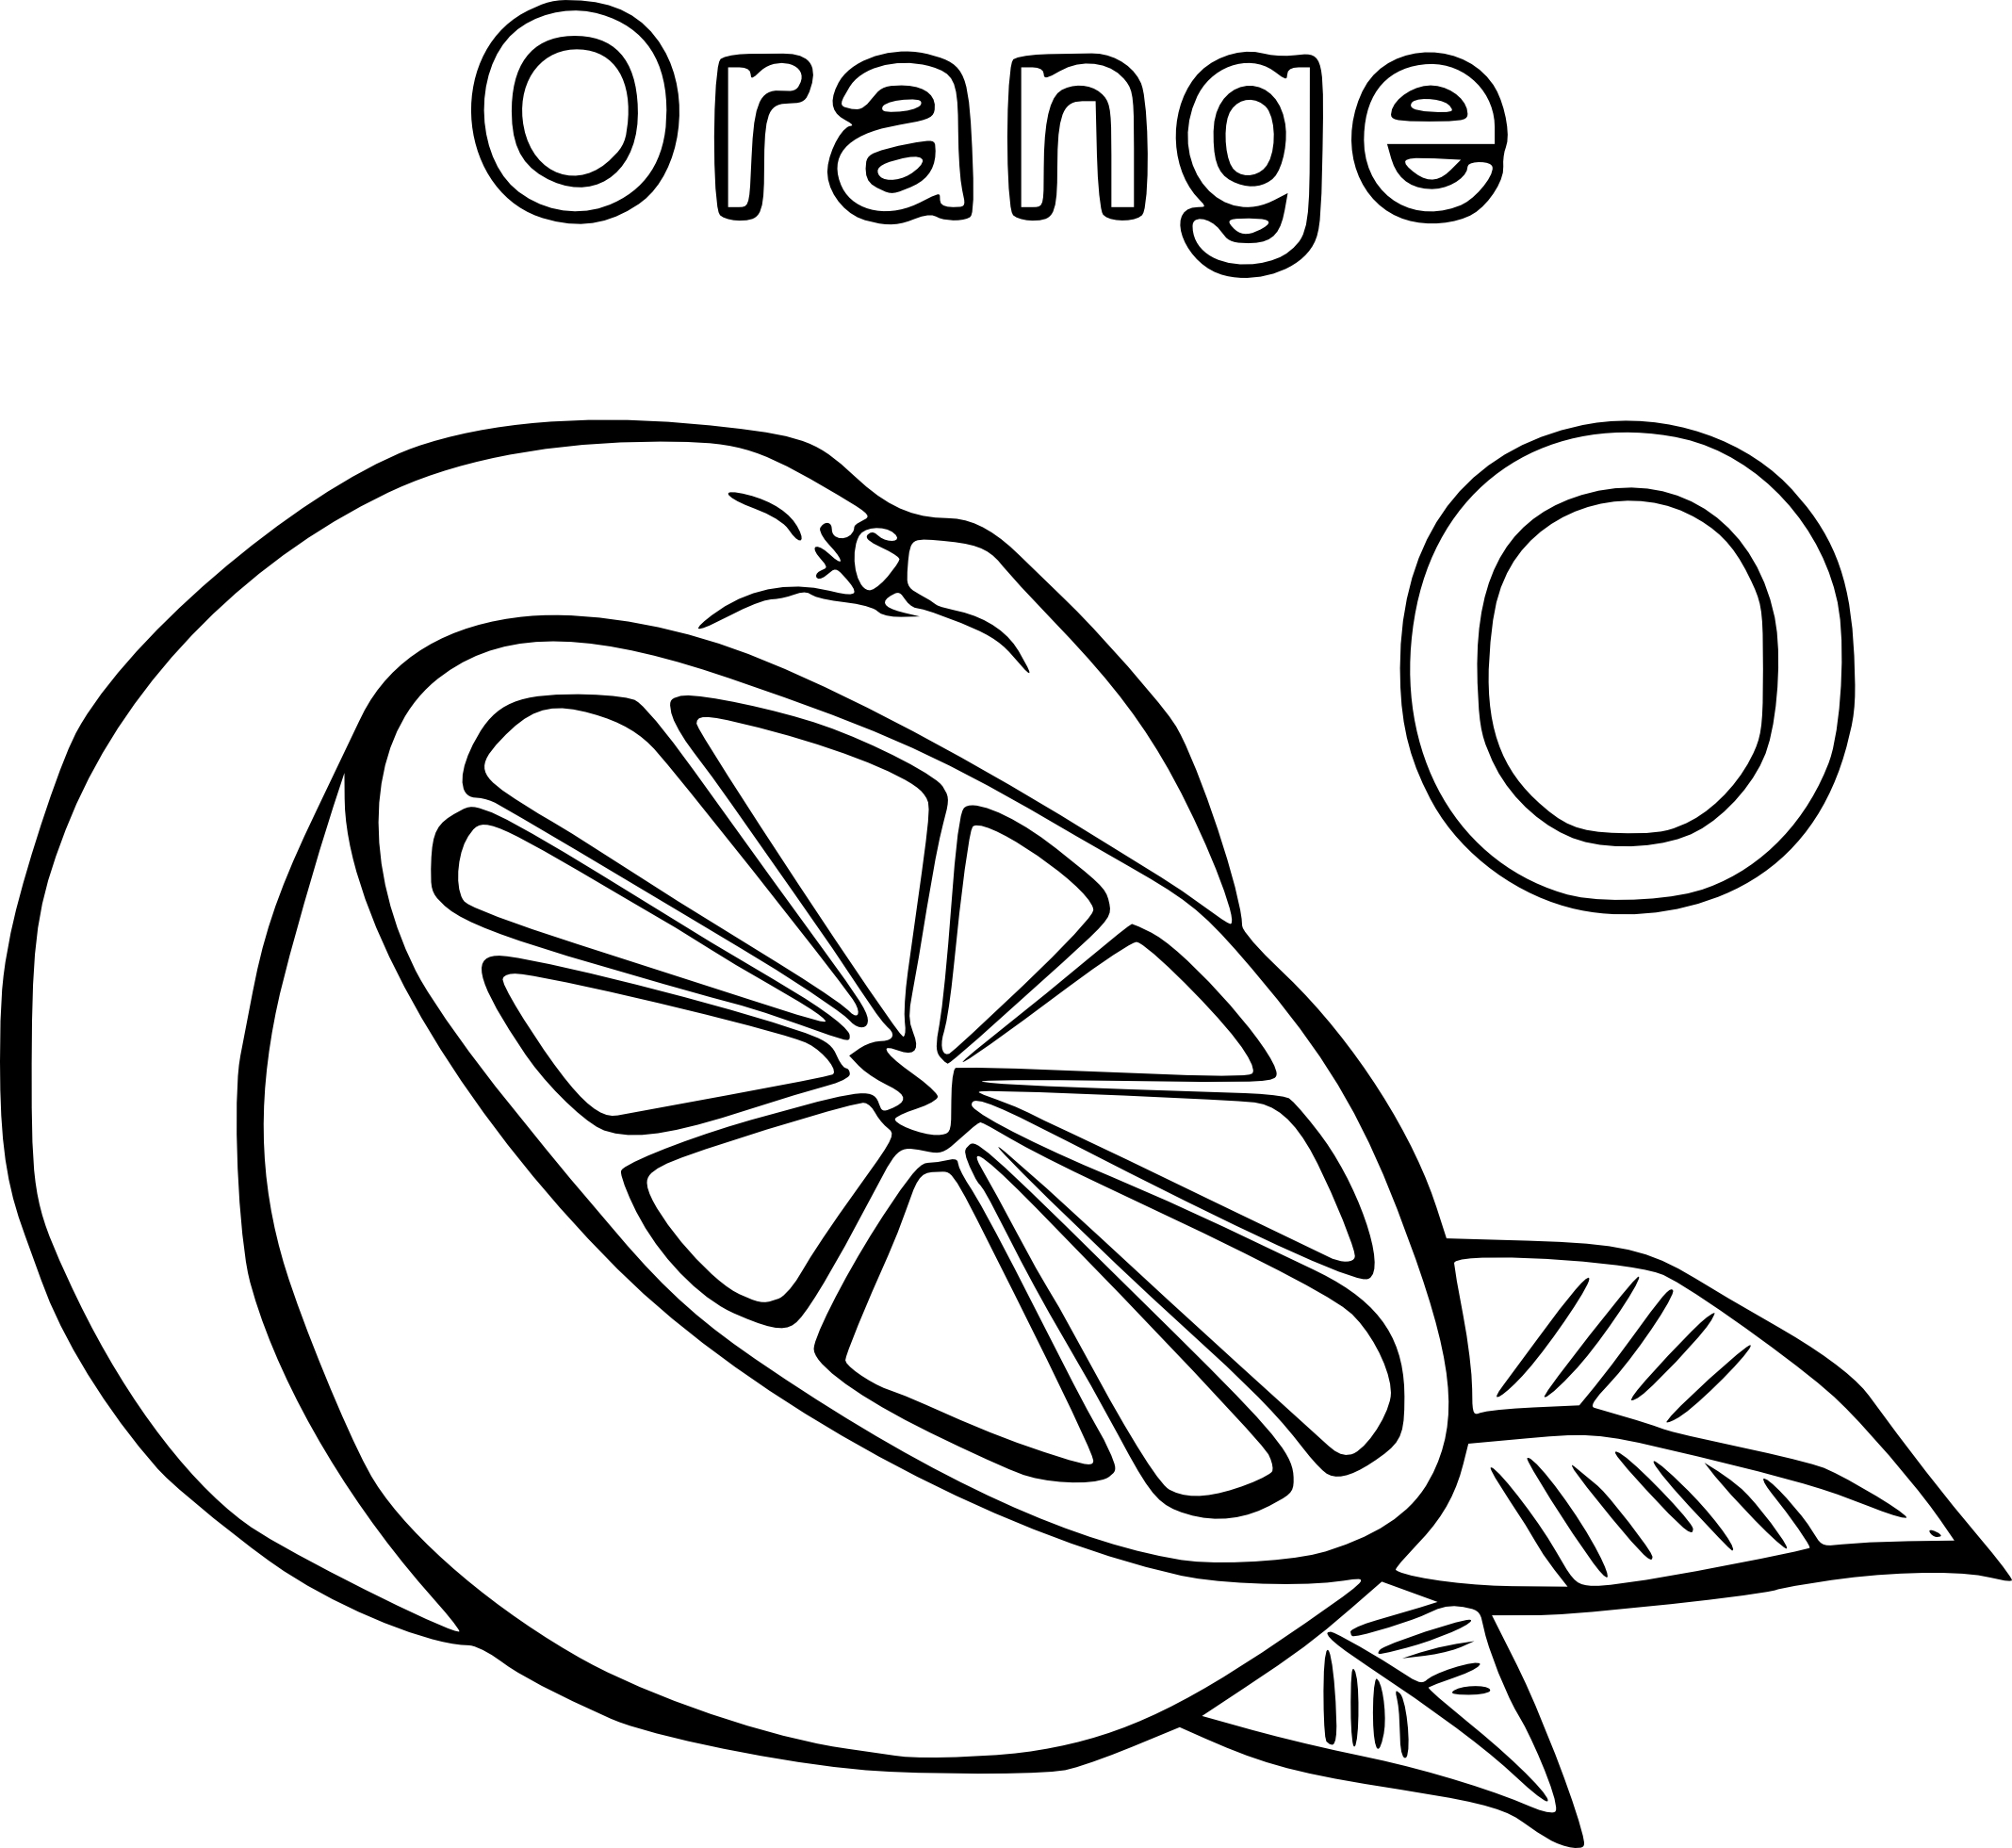 Coloriage orange et dessin imprimer - Orange dessin ...